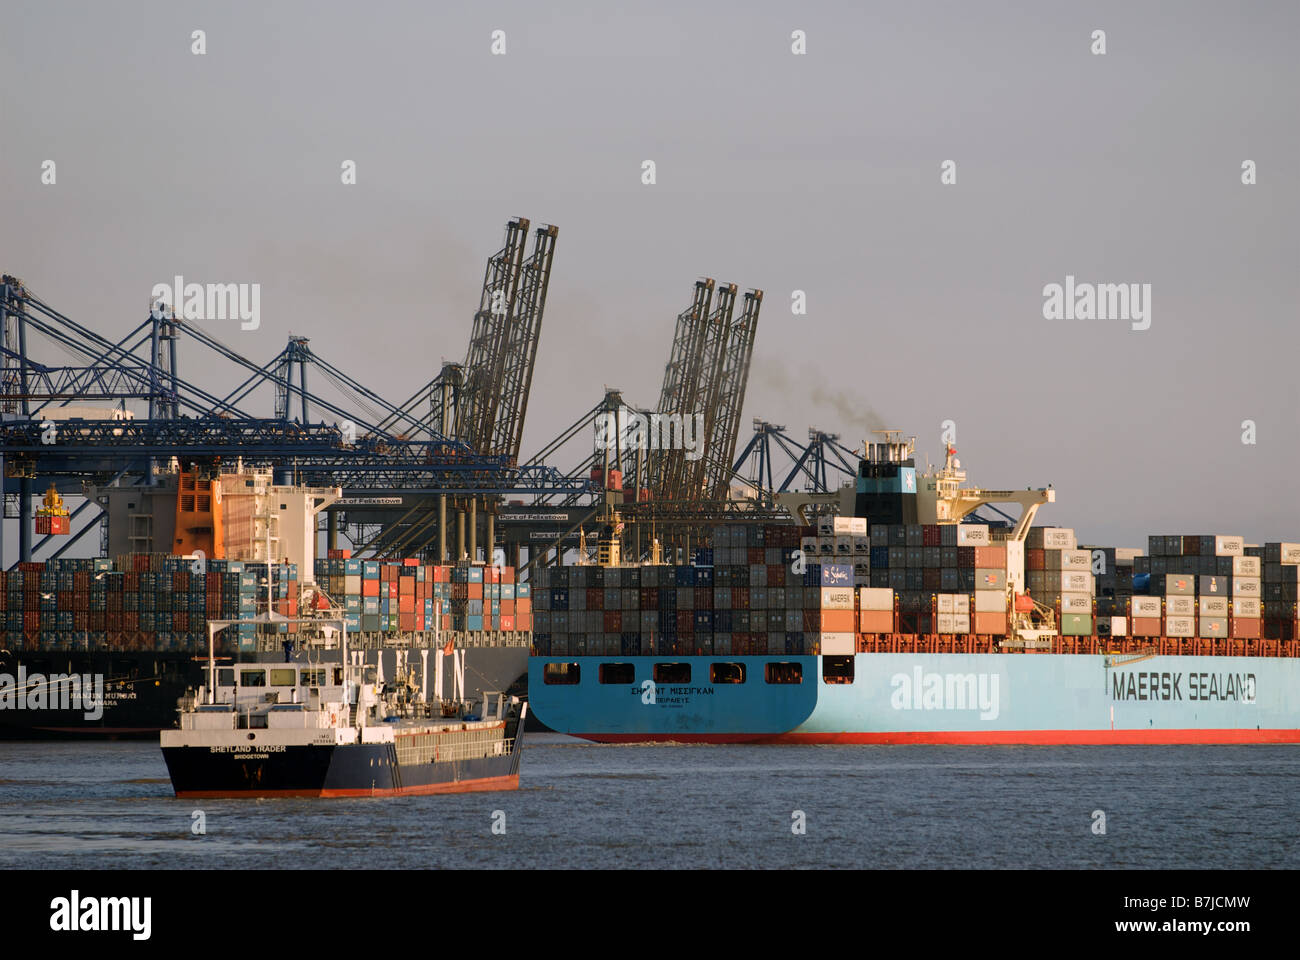 Container ships, Port of Felixstowe, Suffolk, UK. - Stock Image